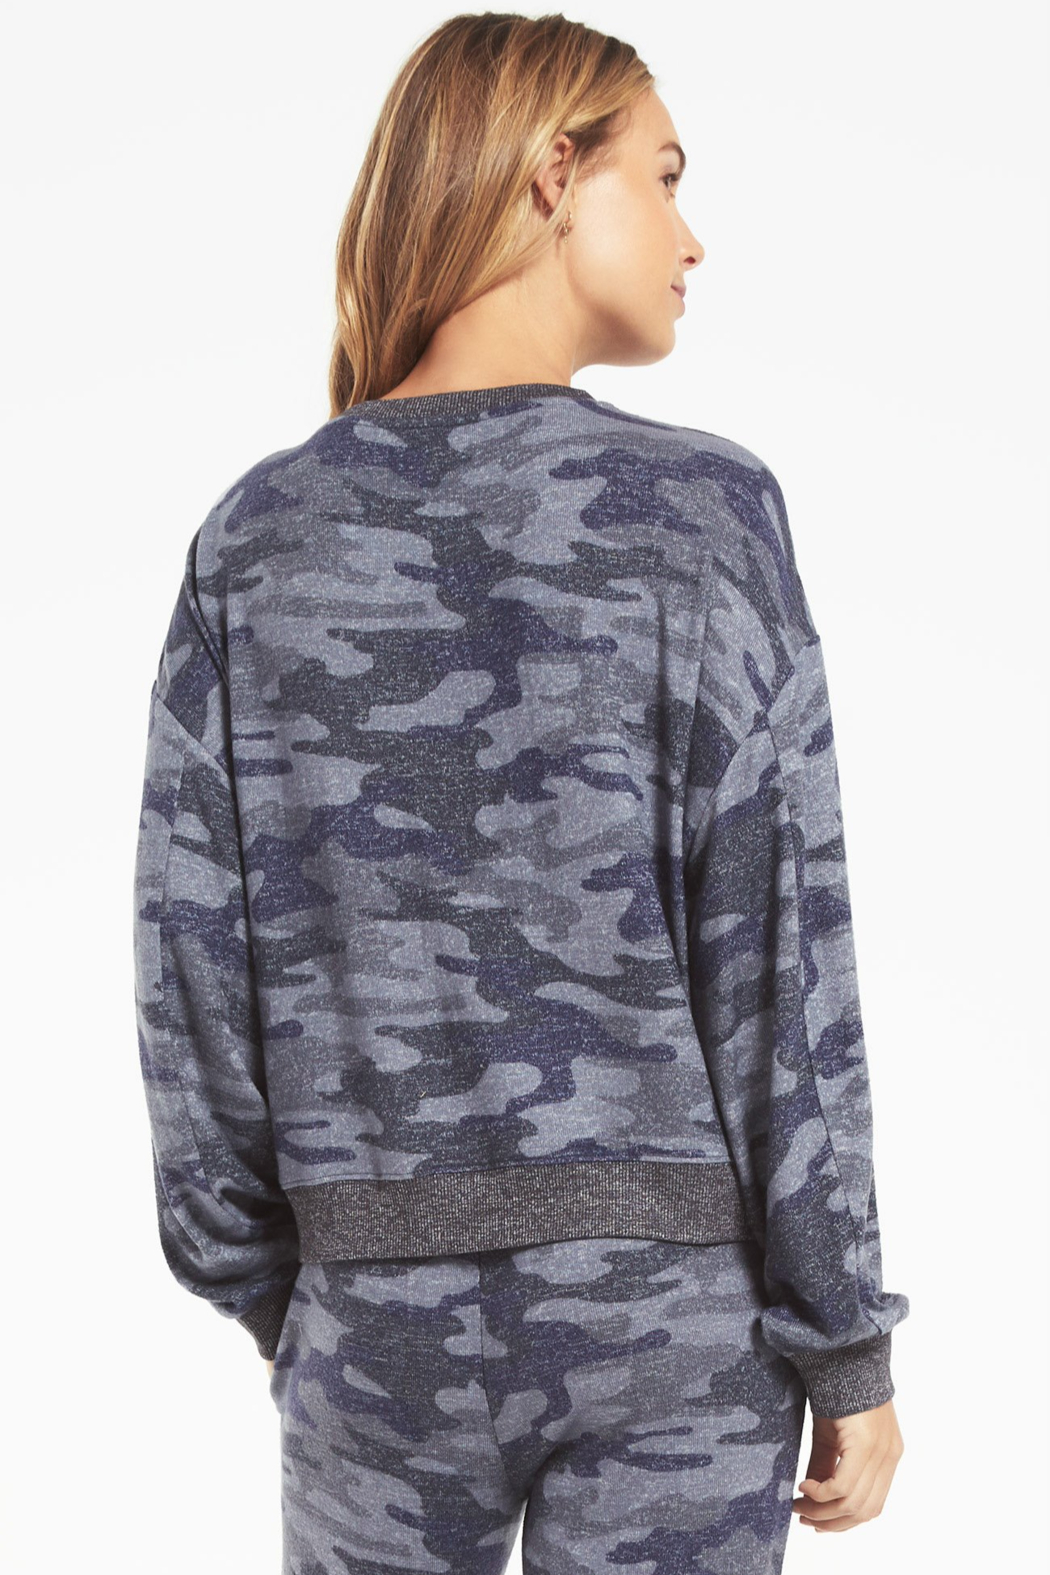 z supply Noa Camo Marled Top - Side Cropped Image